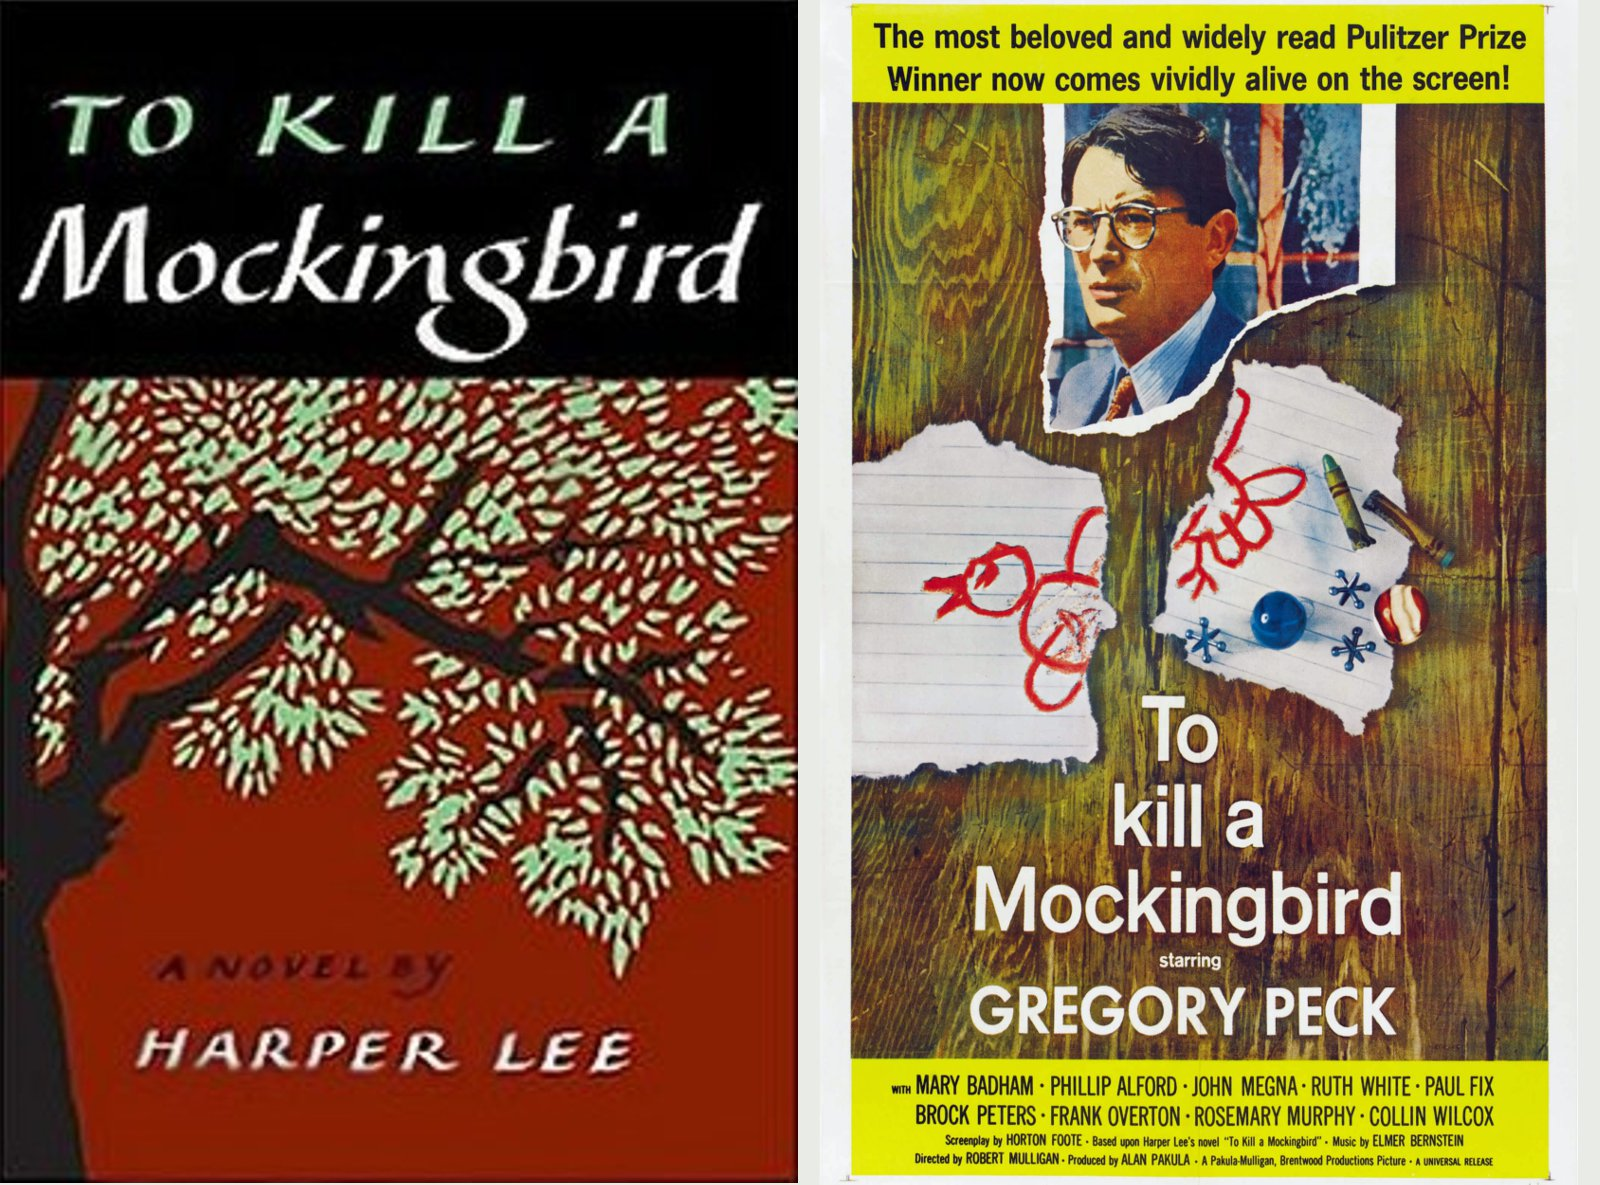 an analysis of the male and female differences in harper lees novel to kill a mockingbird and john s The unforgettable novel of a childhood in a sleepy southern town and the crisis of conscience that rocked it, to kill a mockingbird became both an instant bestseller and a critical success when it was first published in 1960 it went on to win the pulitzer prize in 1961 and was later made into an.